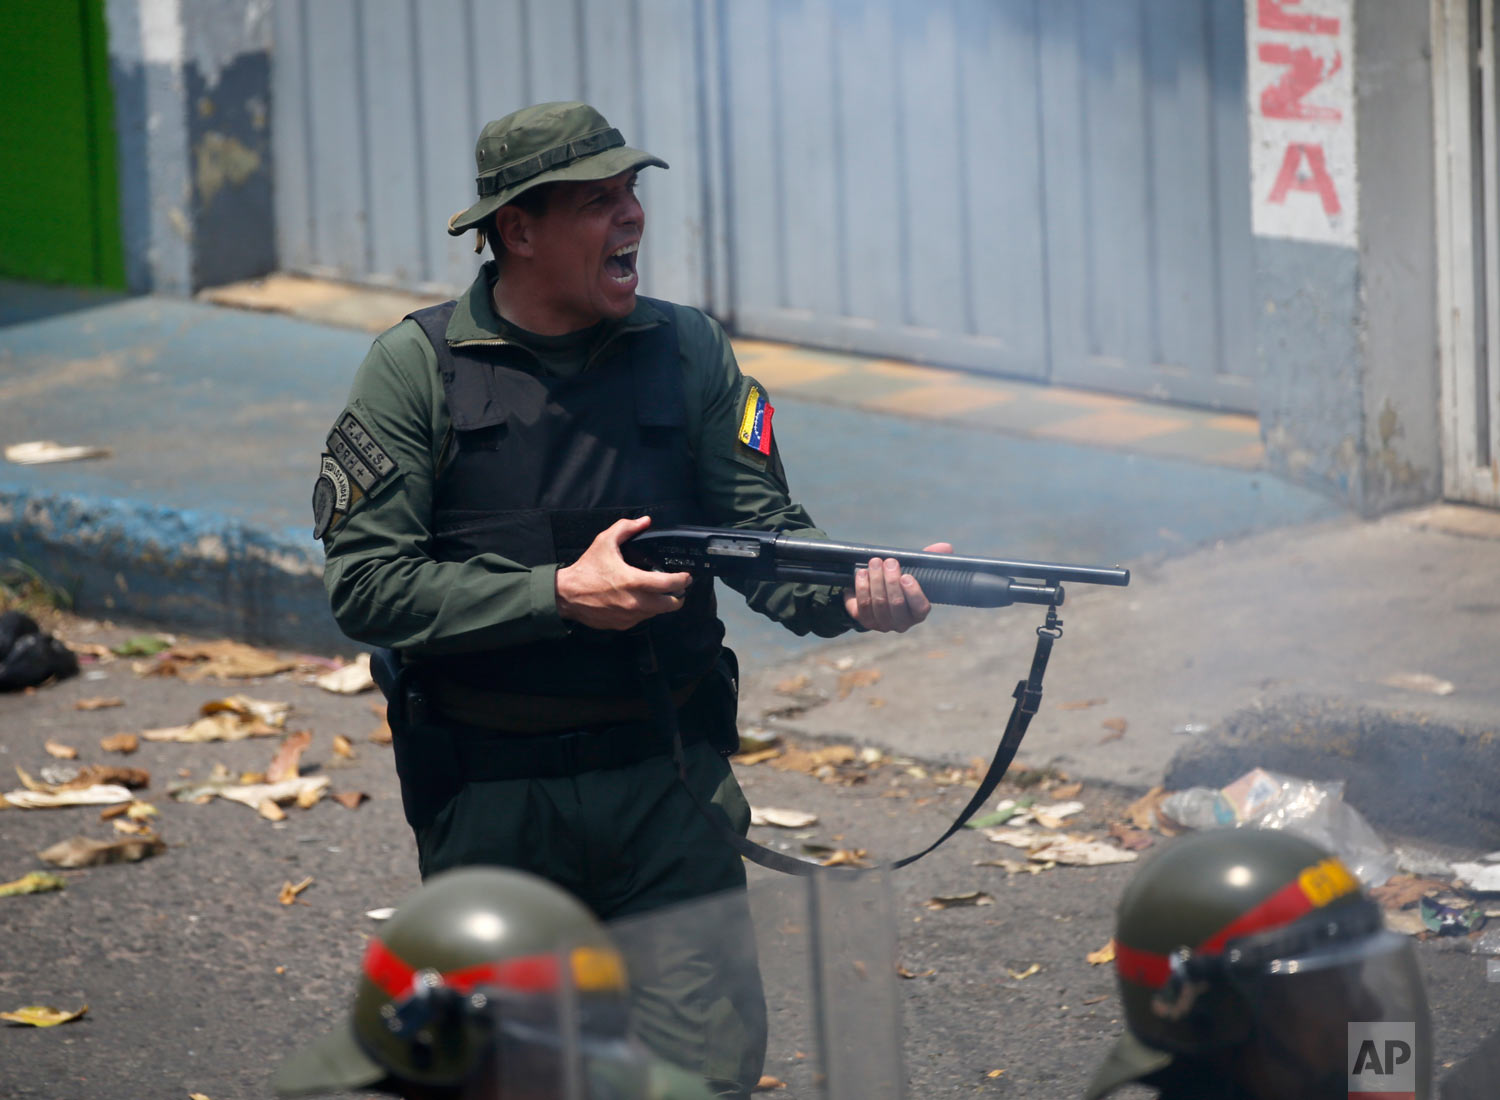 An officer of the Bolivarian National Guard fires his shotgun during clashes in Urena, Venezuela, near the border with Colombia, Feb. 23, 2019. (AP Photo/Fernando Llano)